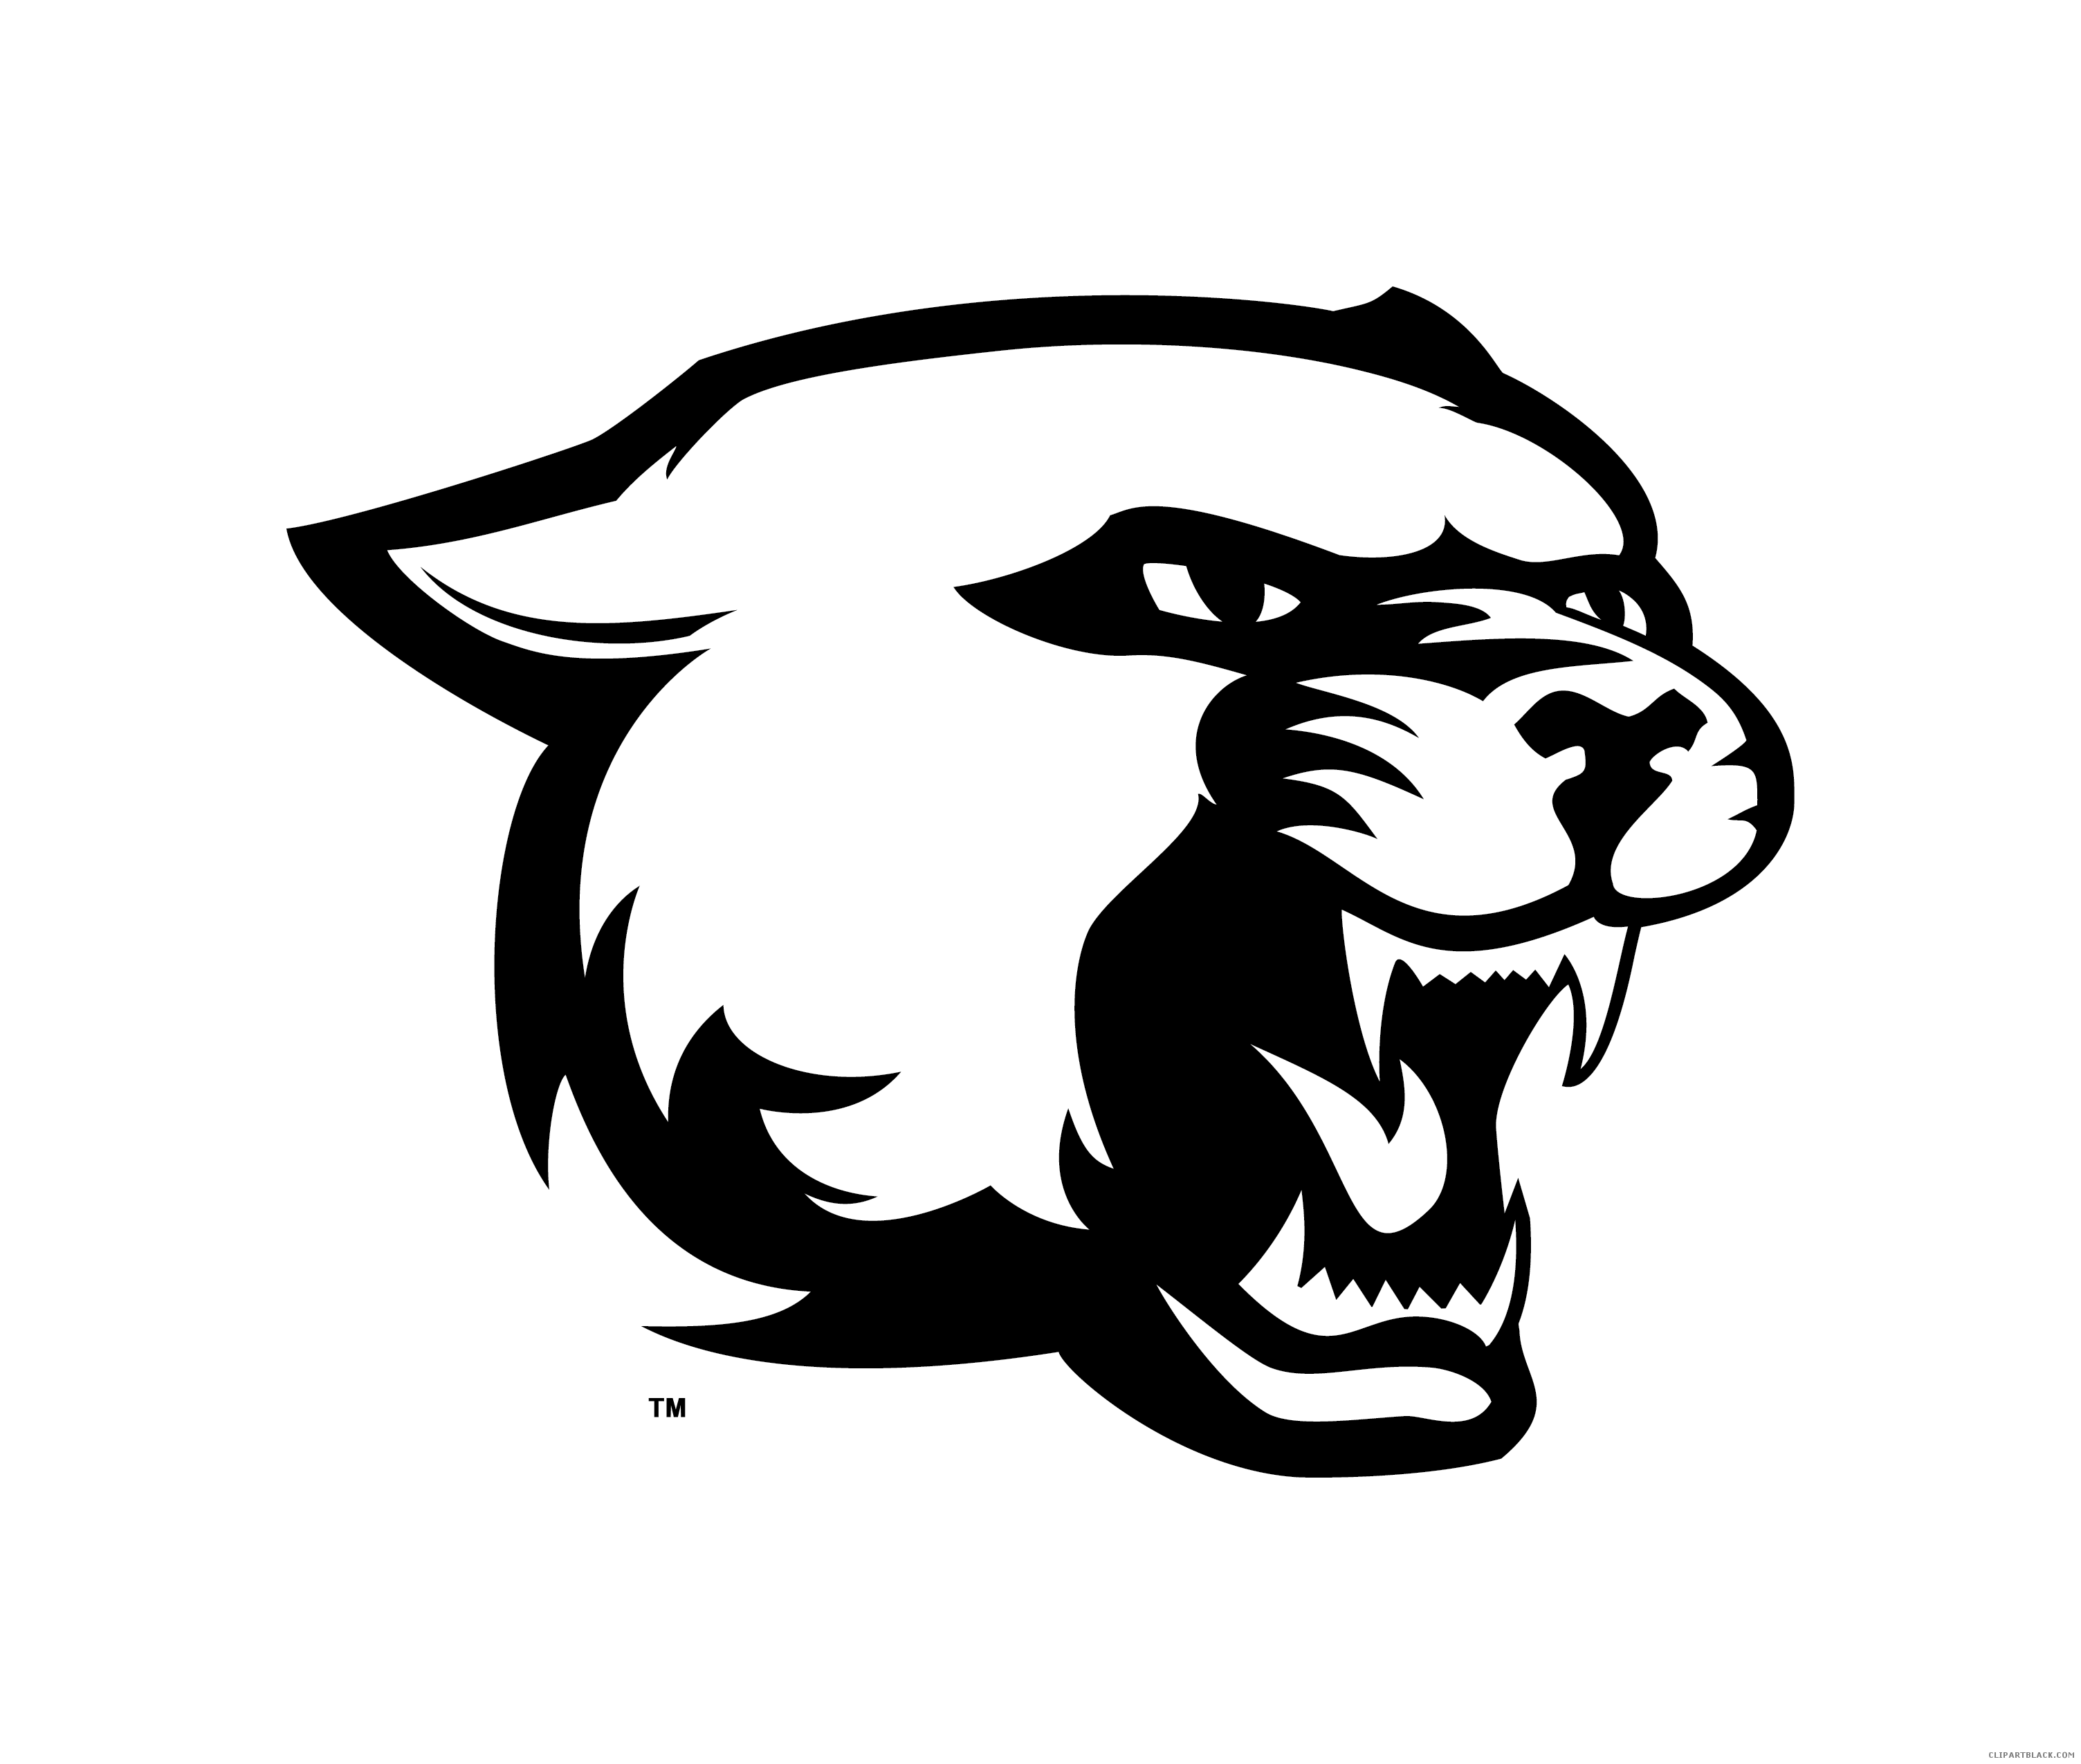 Panther clipart black and white 5 » Clipart Station.